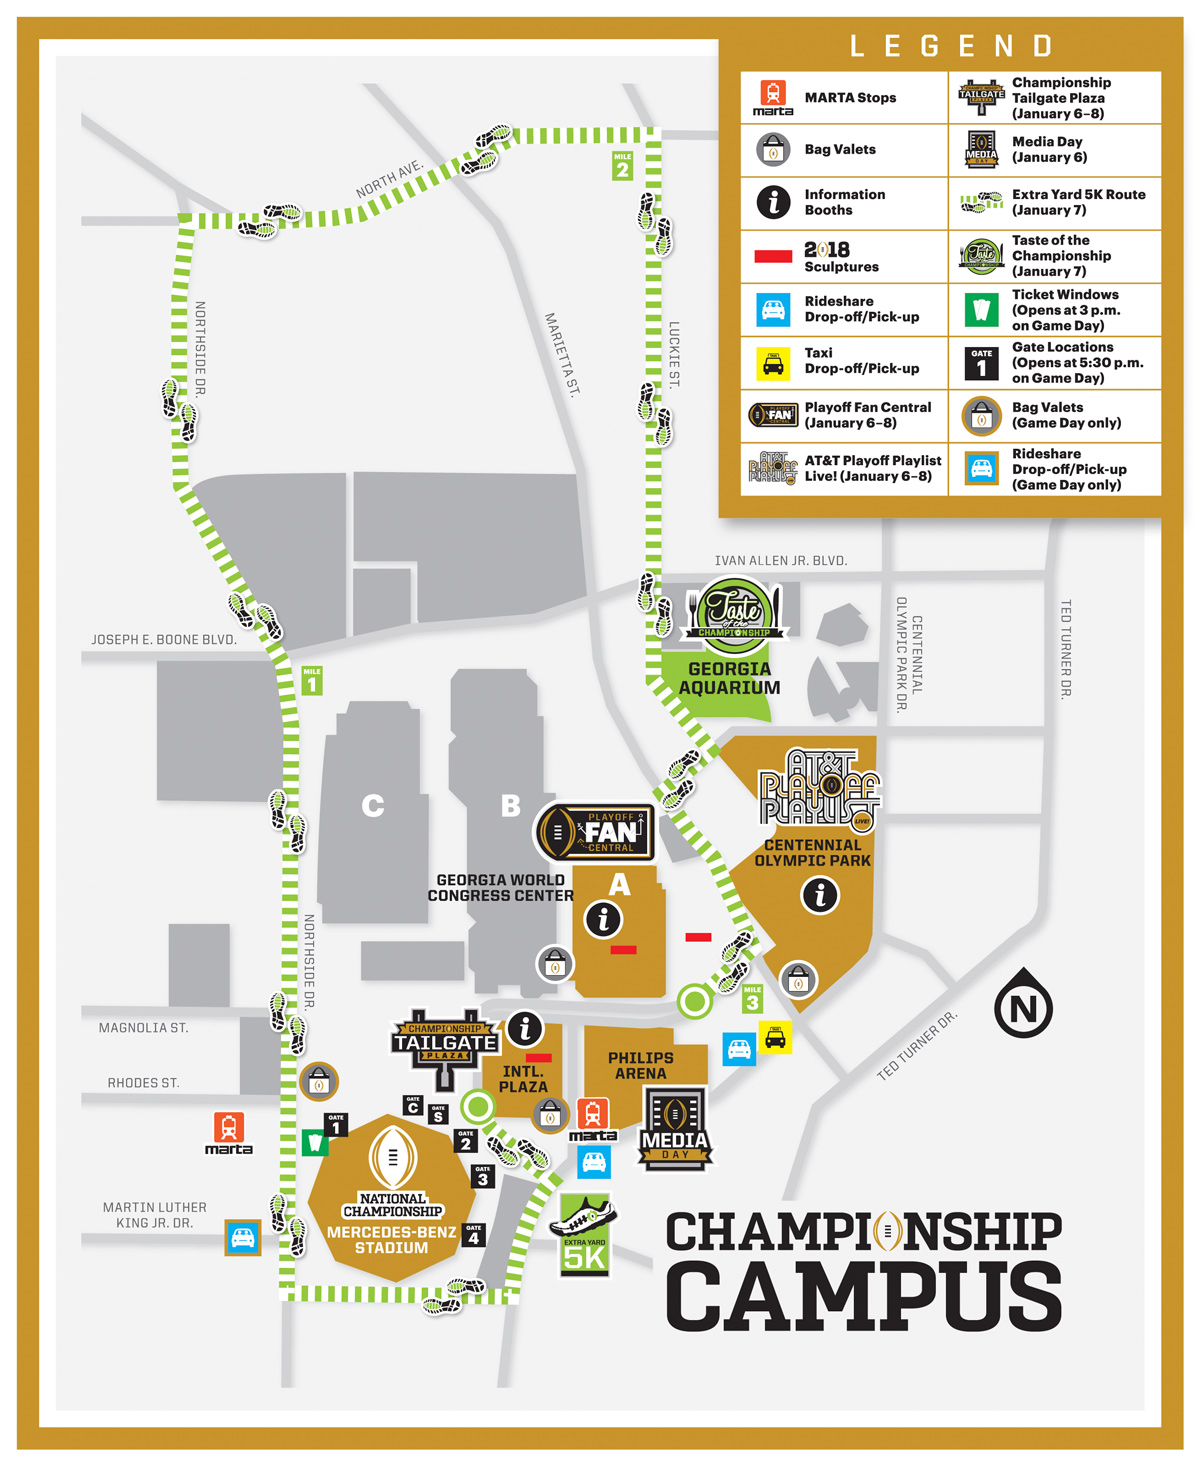 Know before you go atlanta championship game championship campus map gumiabroncs Image collections